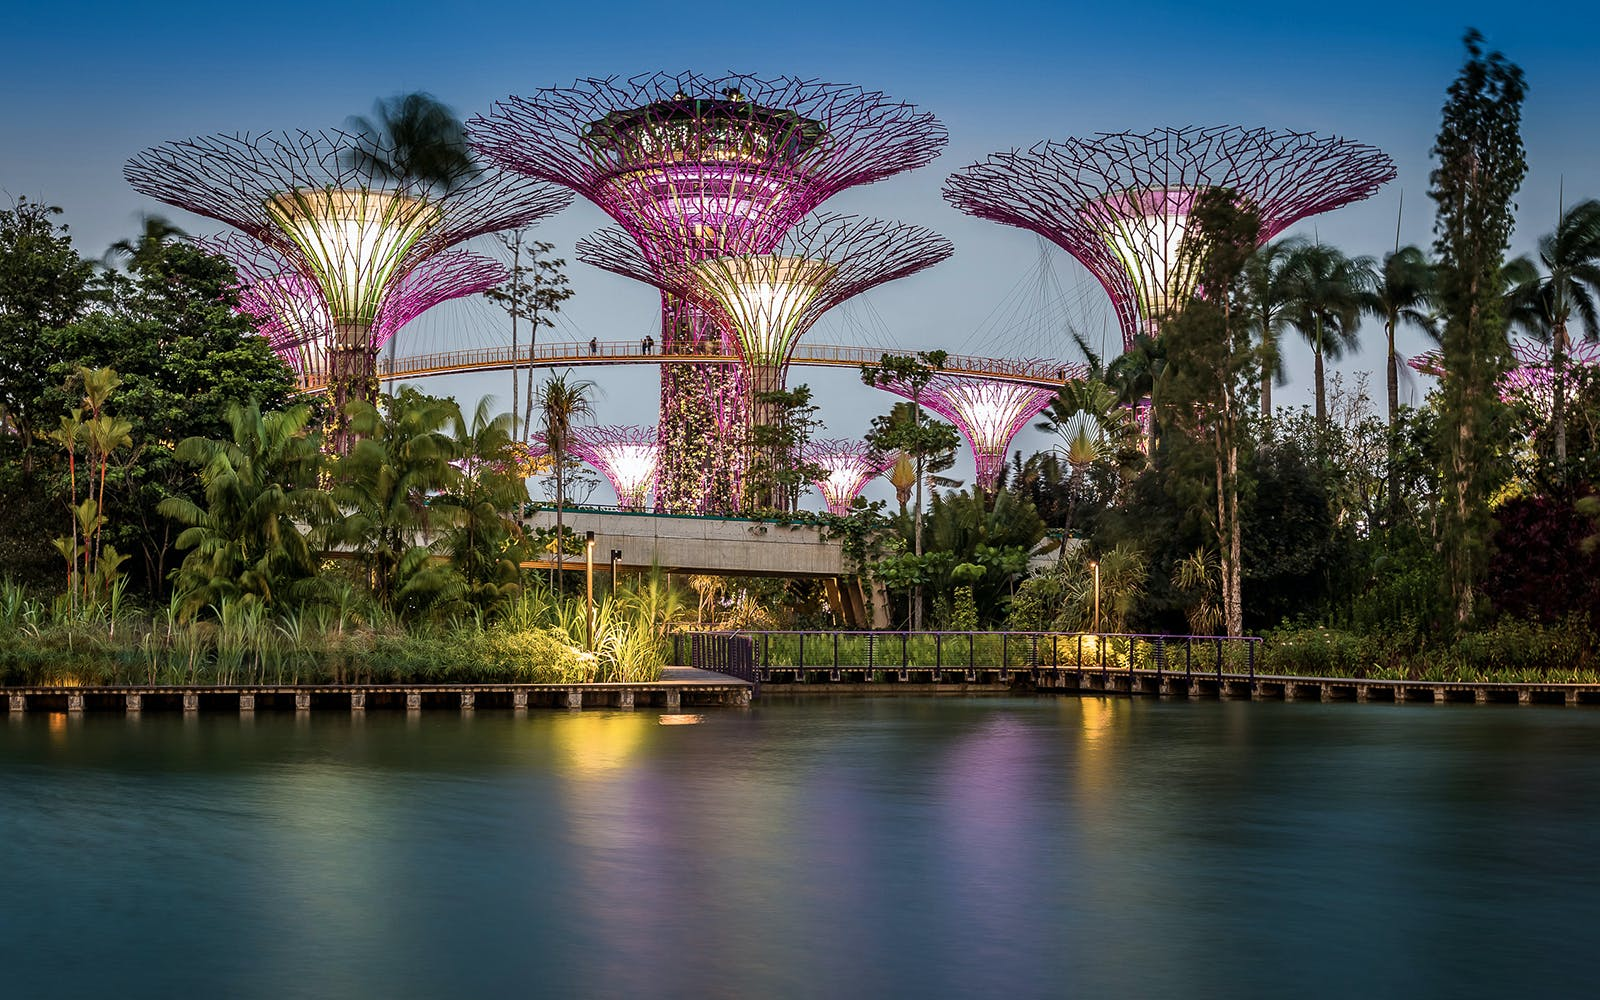 Skip the Line: Gardens by the Bay with OCBC Skyway